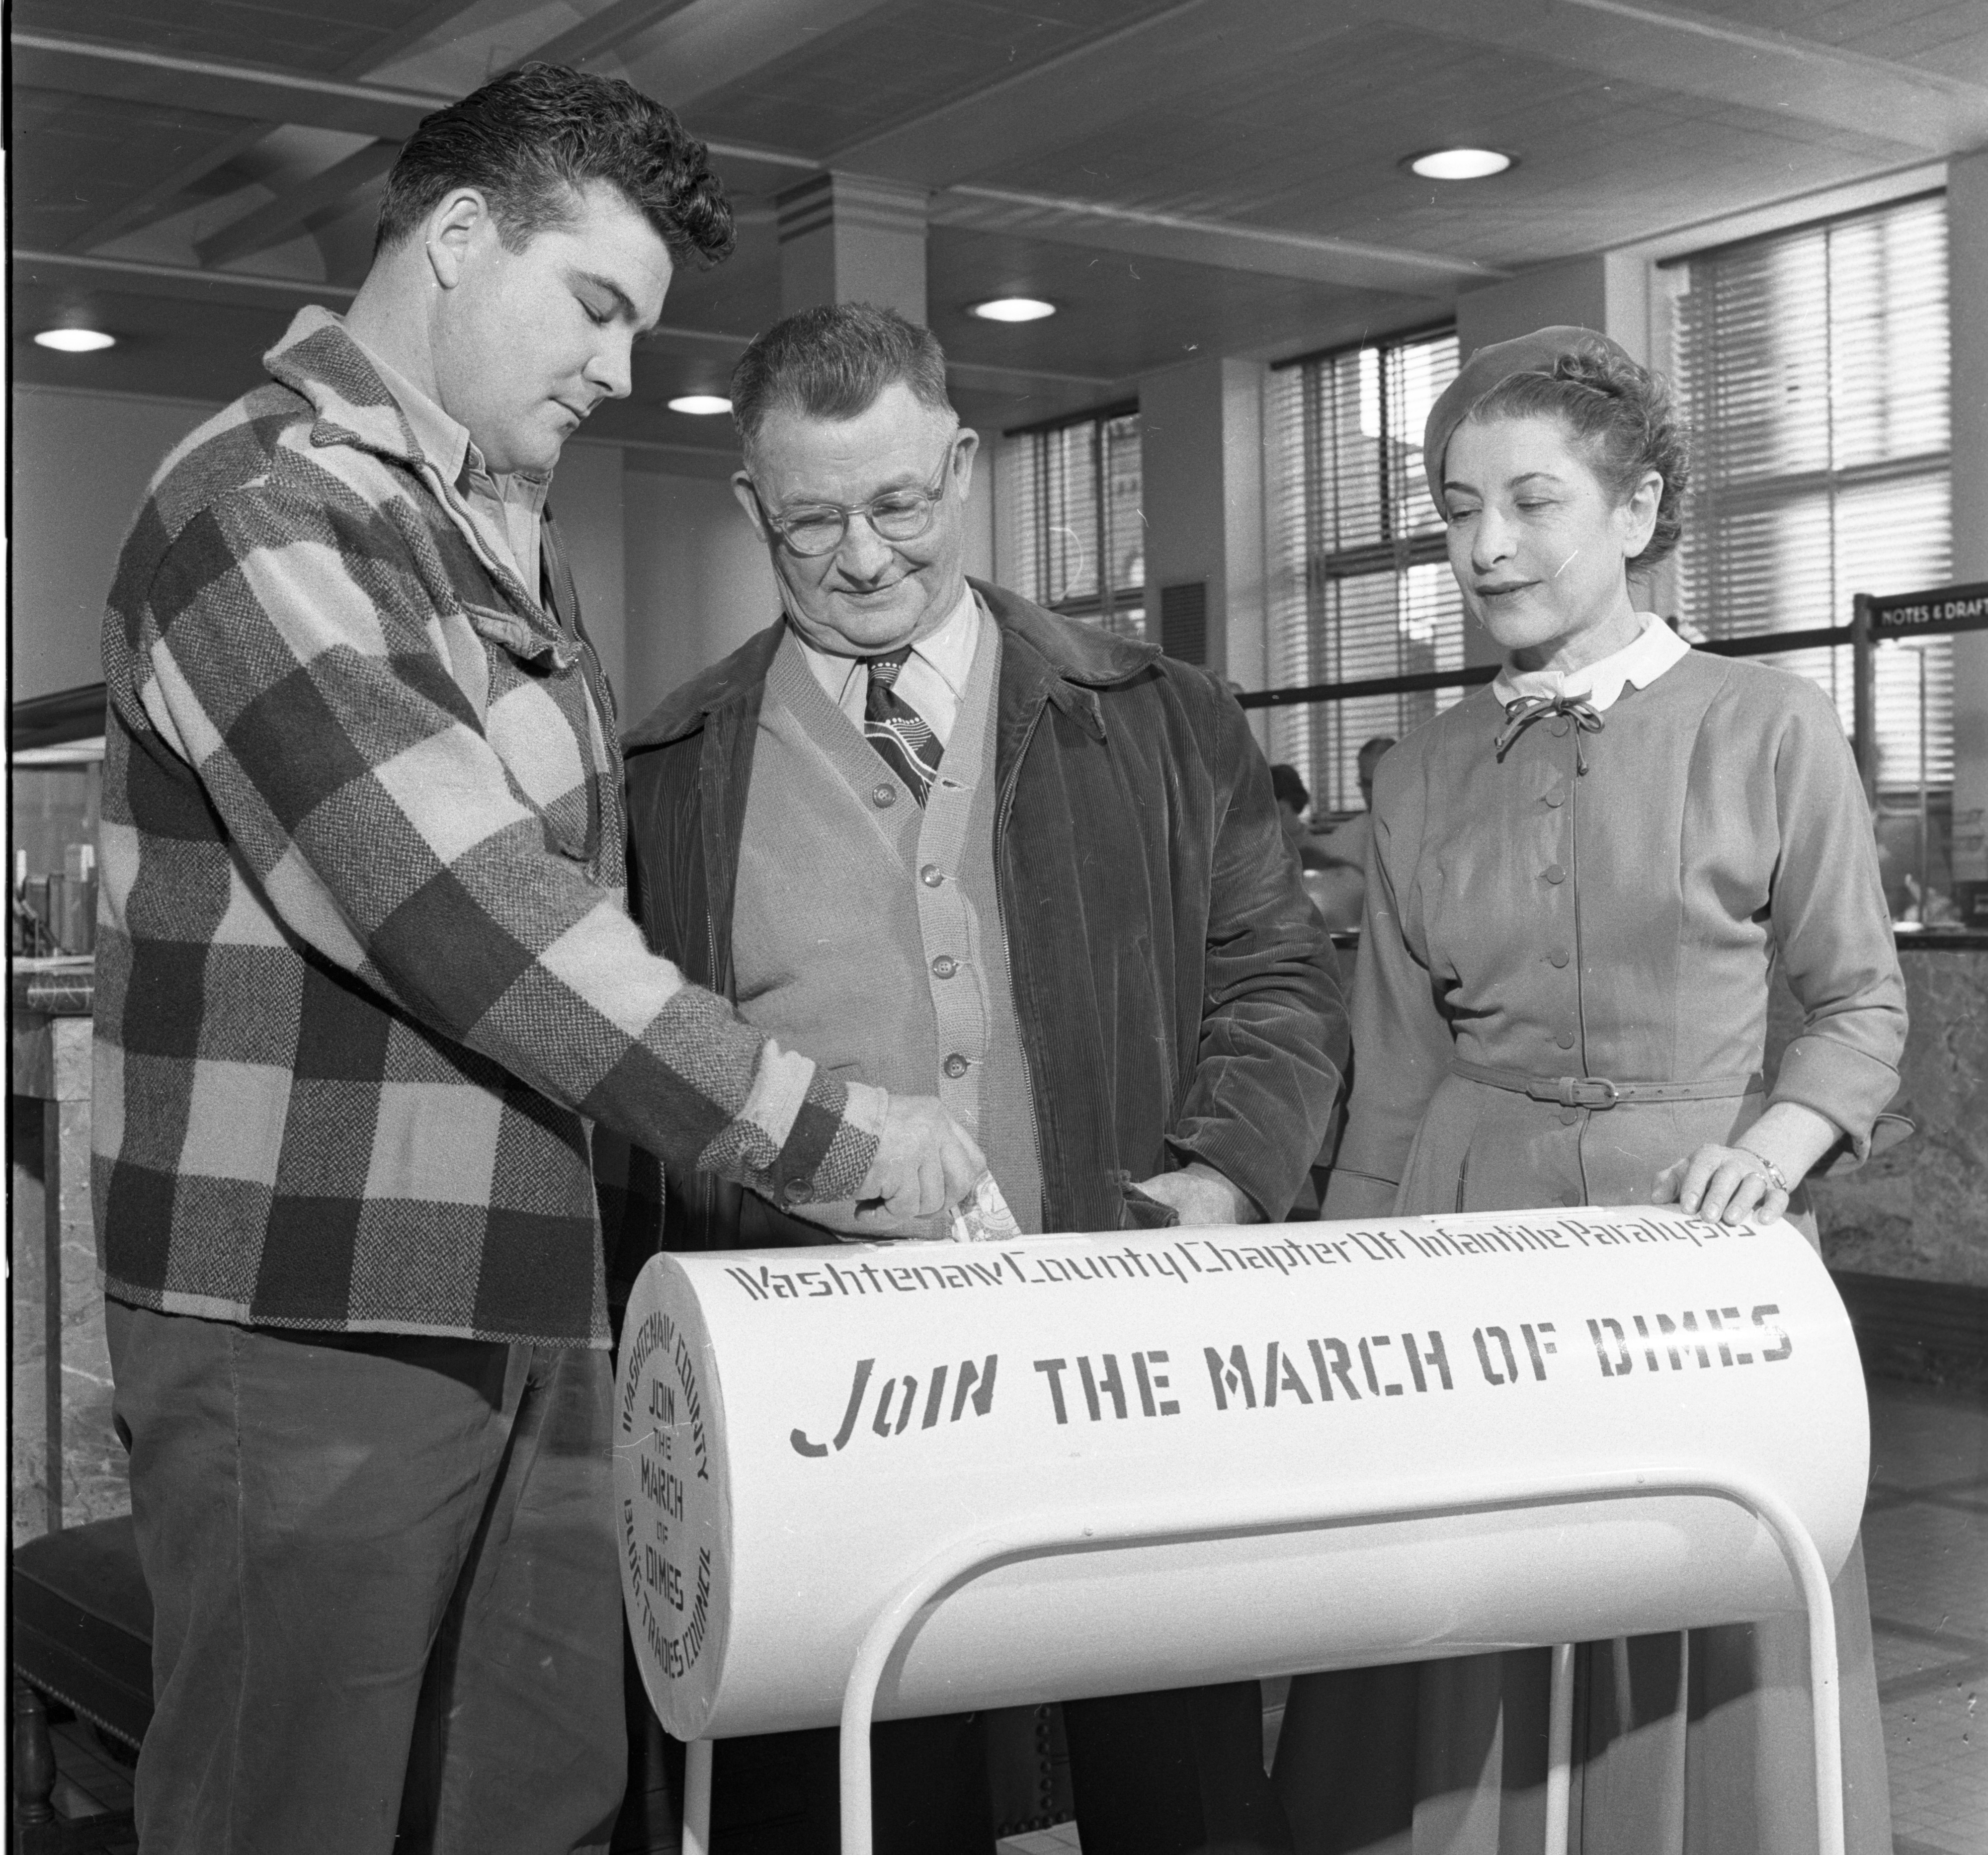 Local Trade Unions Build Canisters for March of Dimes Drive, January 1955 image